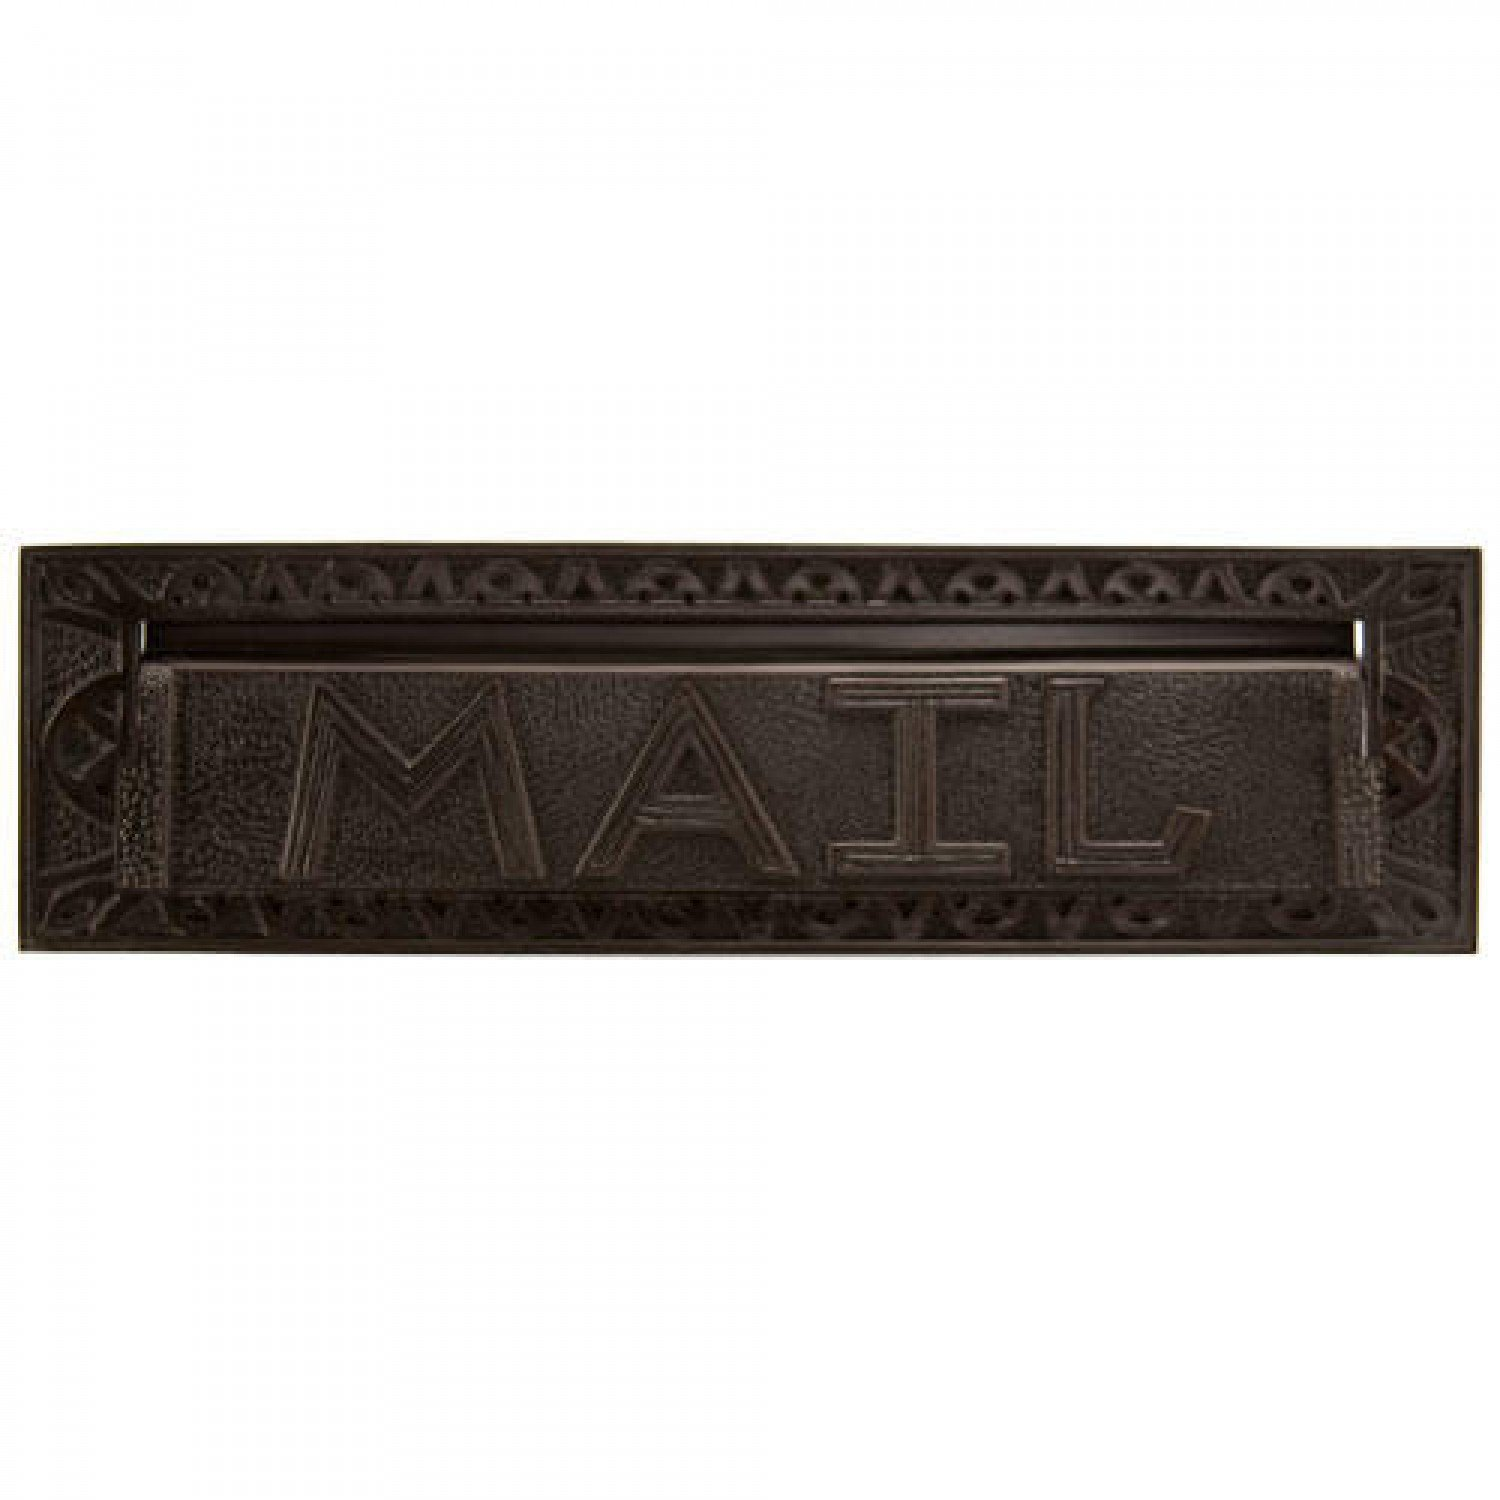 Naiture 13'' Classic Heavy Duty ''mail'' Letter Slot in Oil Rubbed Bronze Finish by SH